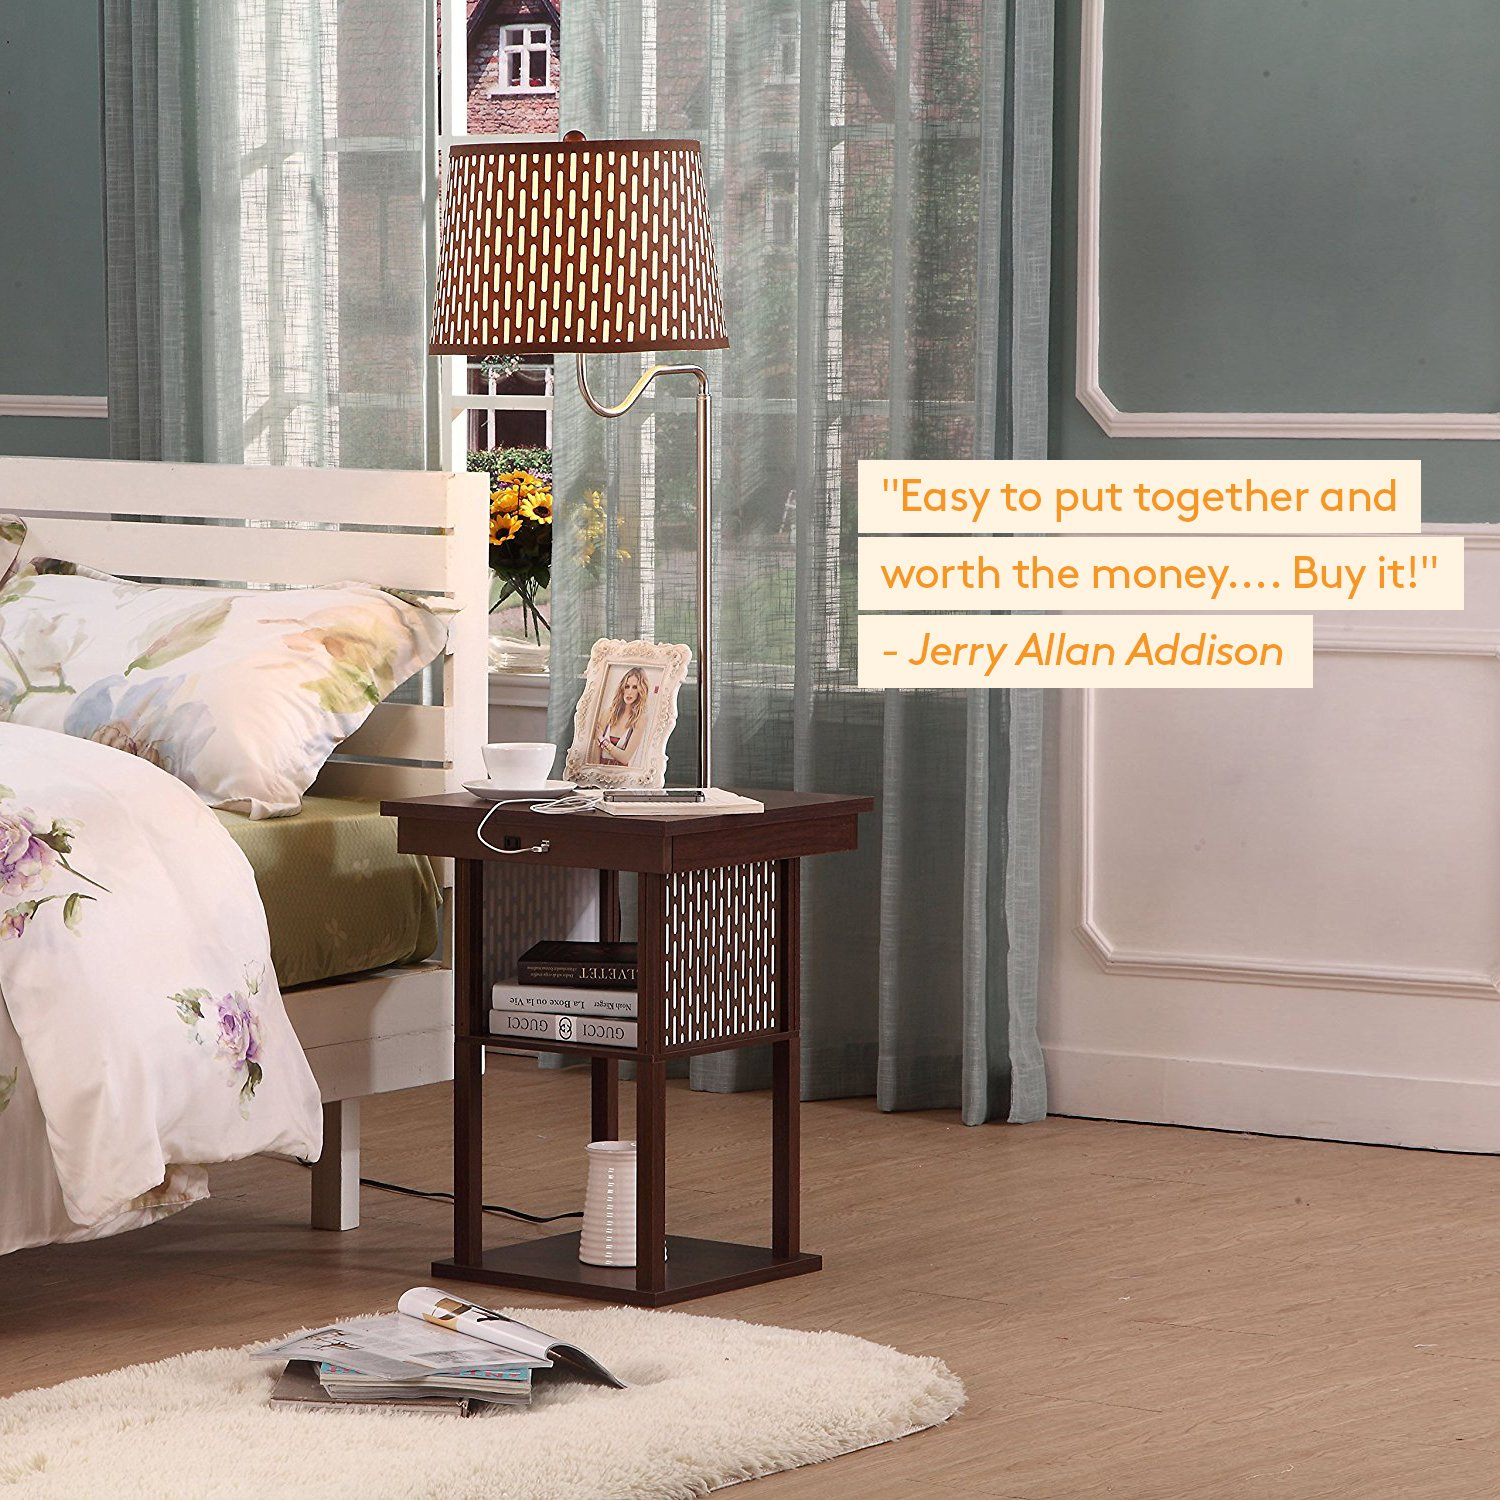 Brightech Madison - Mid Century Modern Nightstand, Shelves & USB Port Combination - Bedside Table with LED Floor Lamp Attached - End Table for Living Room Sofas - Brown by Brightech (Image #9)